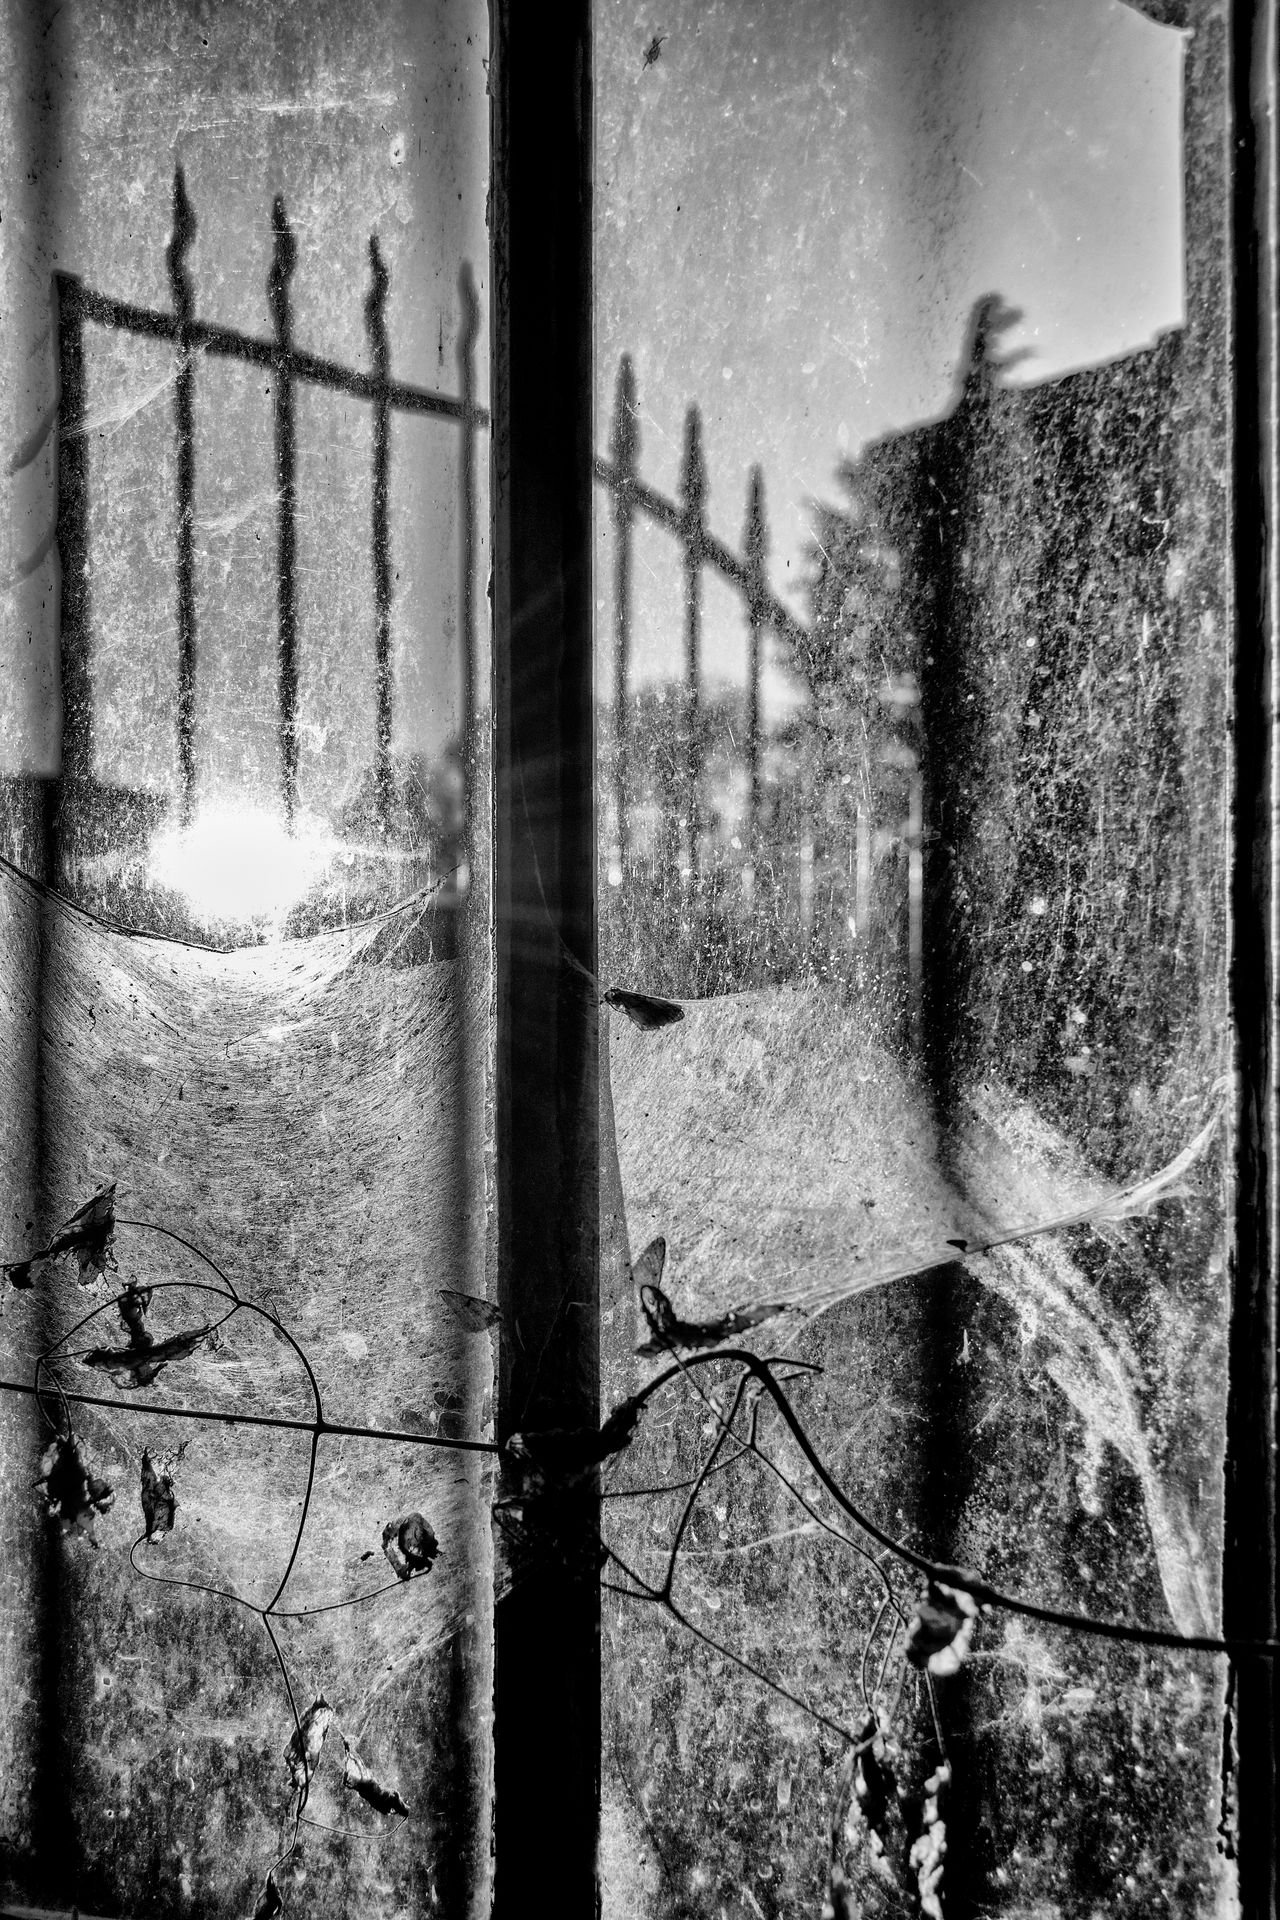 Window Looking Through Window Cobweb Cobwebs Spider Web Abandoned Abandoned Places Winter_collection Nsnfotografie Wintertime Urbexphotography Beauty Of Decay Blackandwhite Black And White Bw_collection Urbex sunset #sun #clouds #skylovers #sky #nature #beautifulinnature #naturalbeauty Sunset